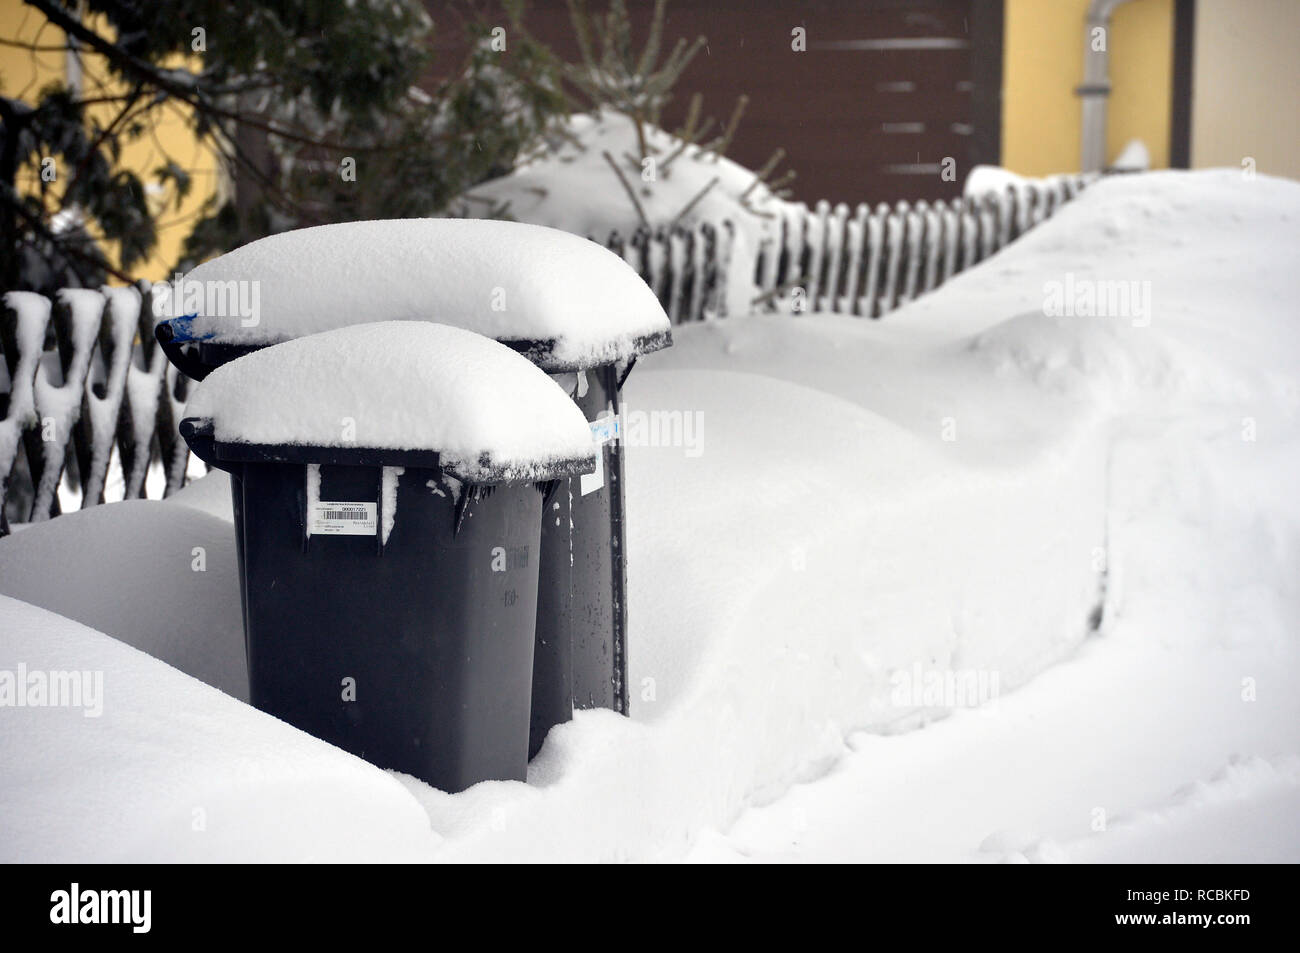 10 January 2019, Saxony, Schönheide: Garbage bins and yellow sacks are snowed in on a property in Schönheide, Saxony. In winter, garbage trucks often have a hard time emptying the containers. Photo: Volkmar Heinz/dpa-Zentralbild/ZB - Stock Image